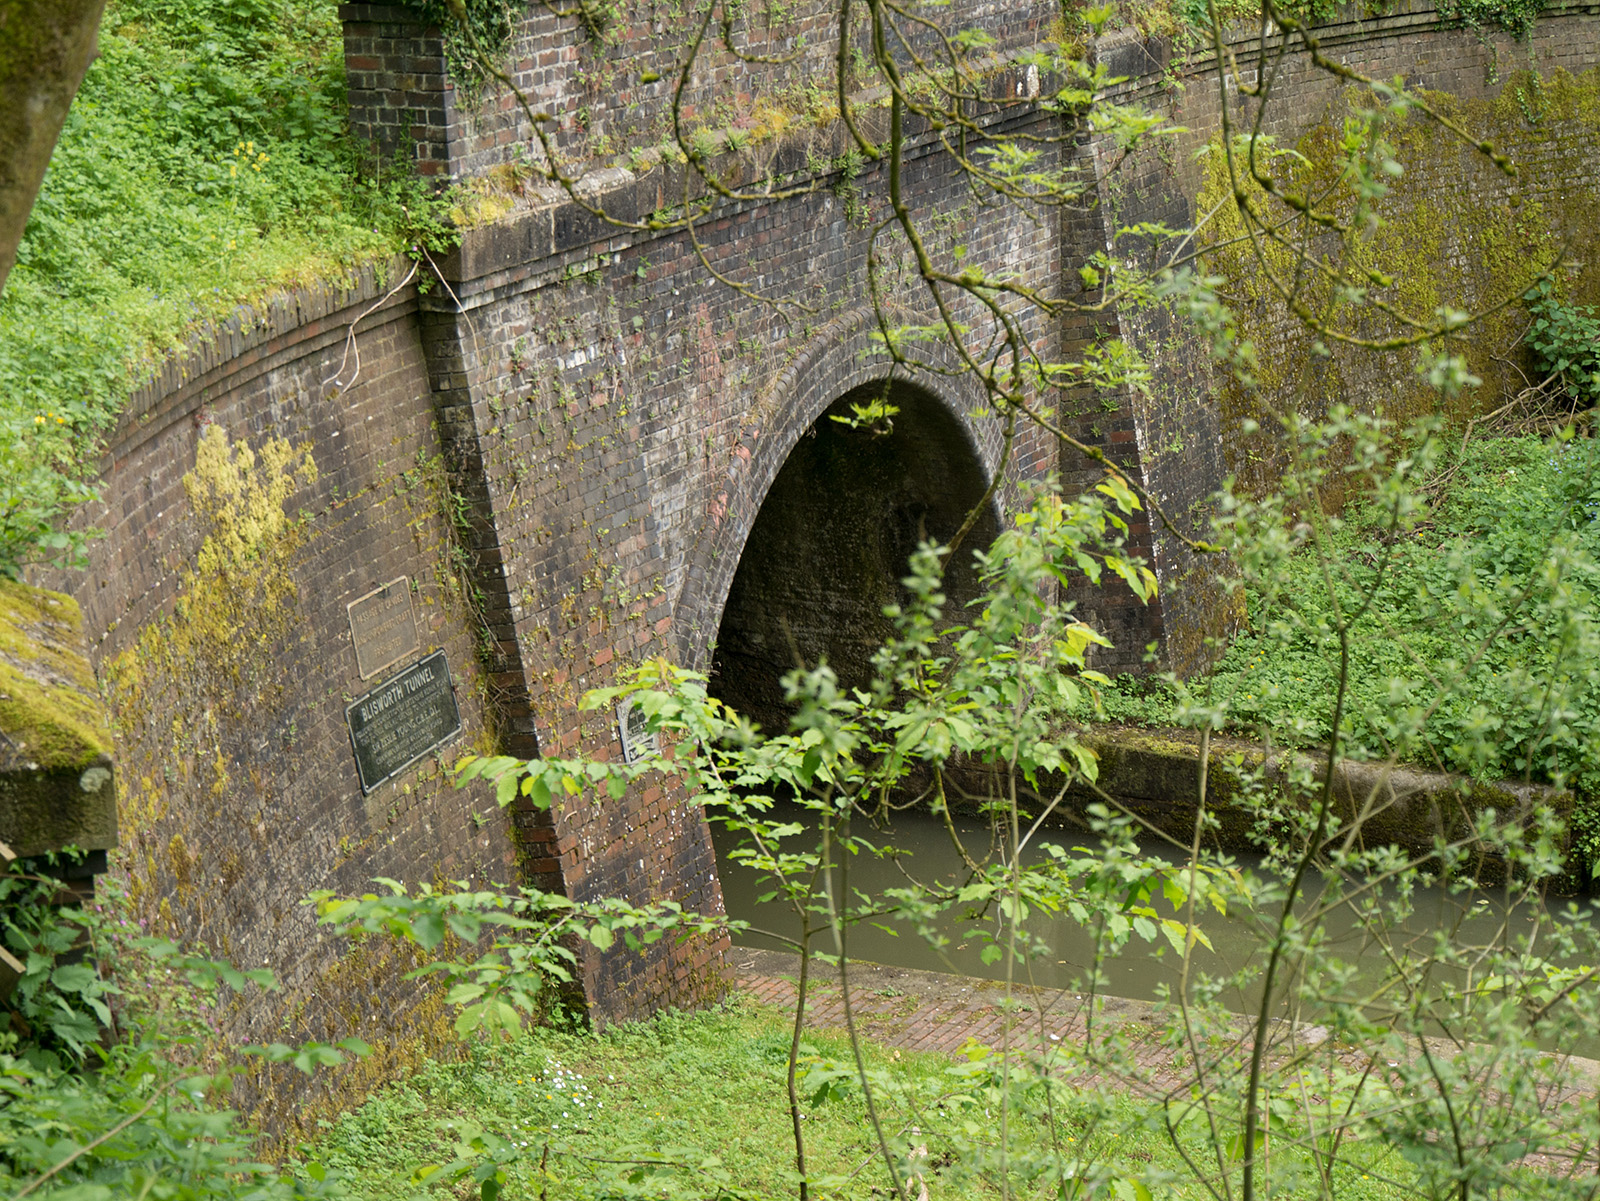 Looking down on the northern entrance to Blissworth tunnel